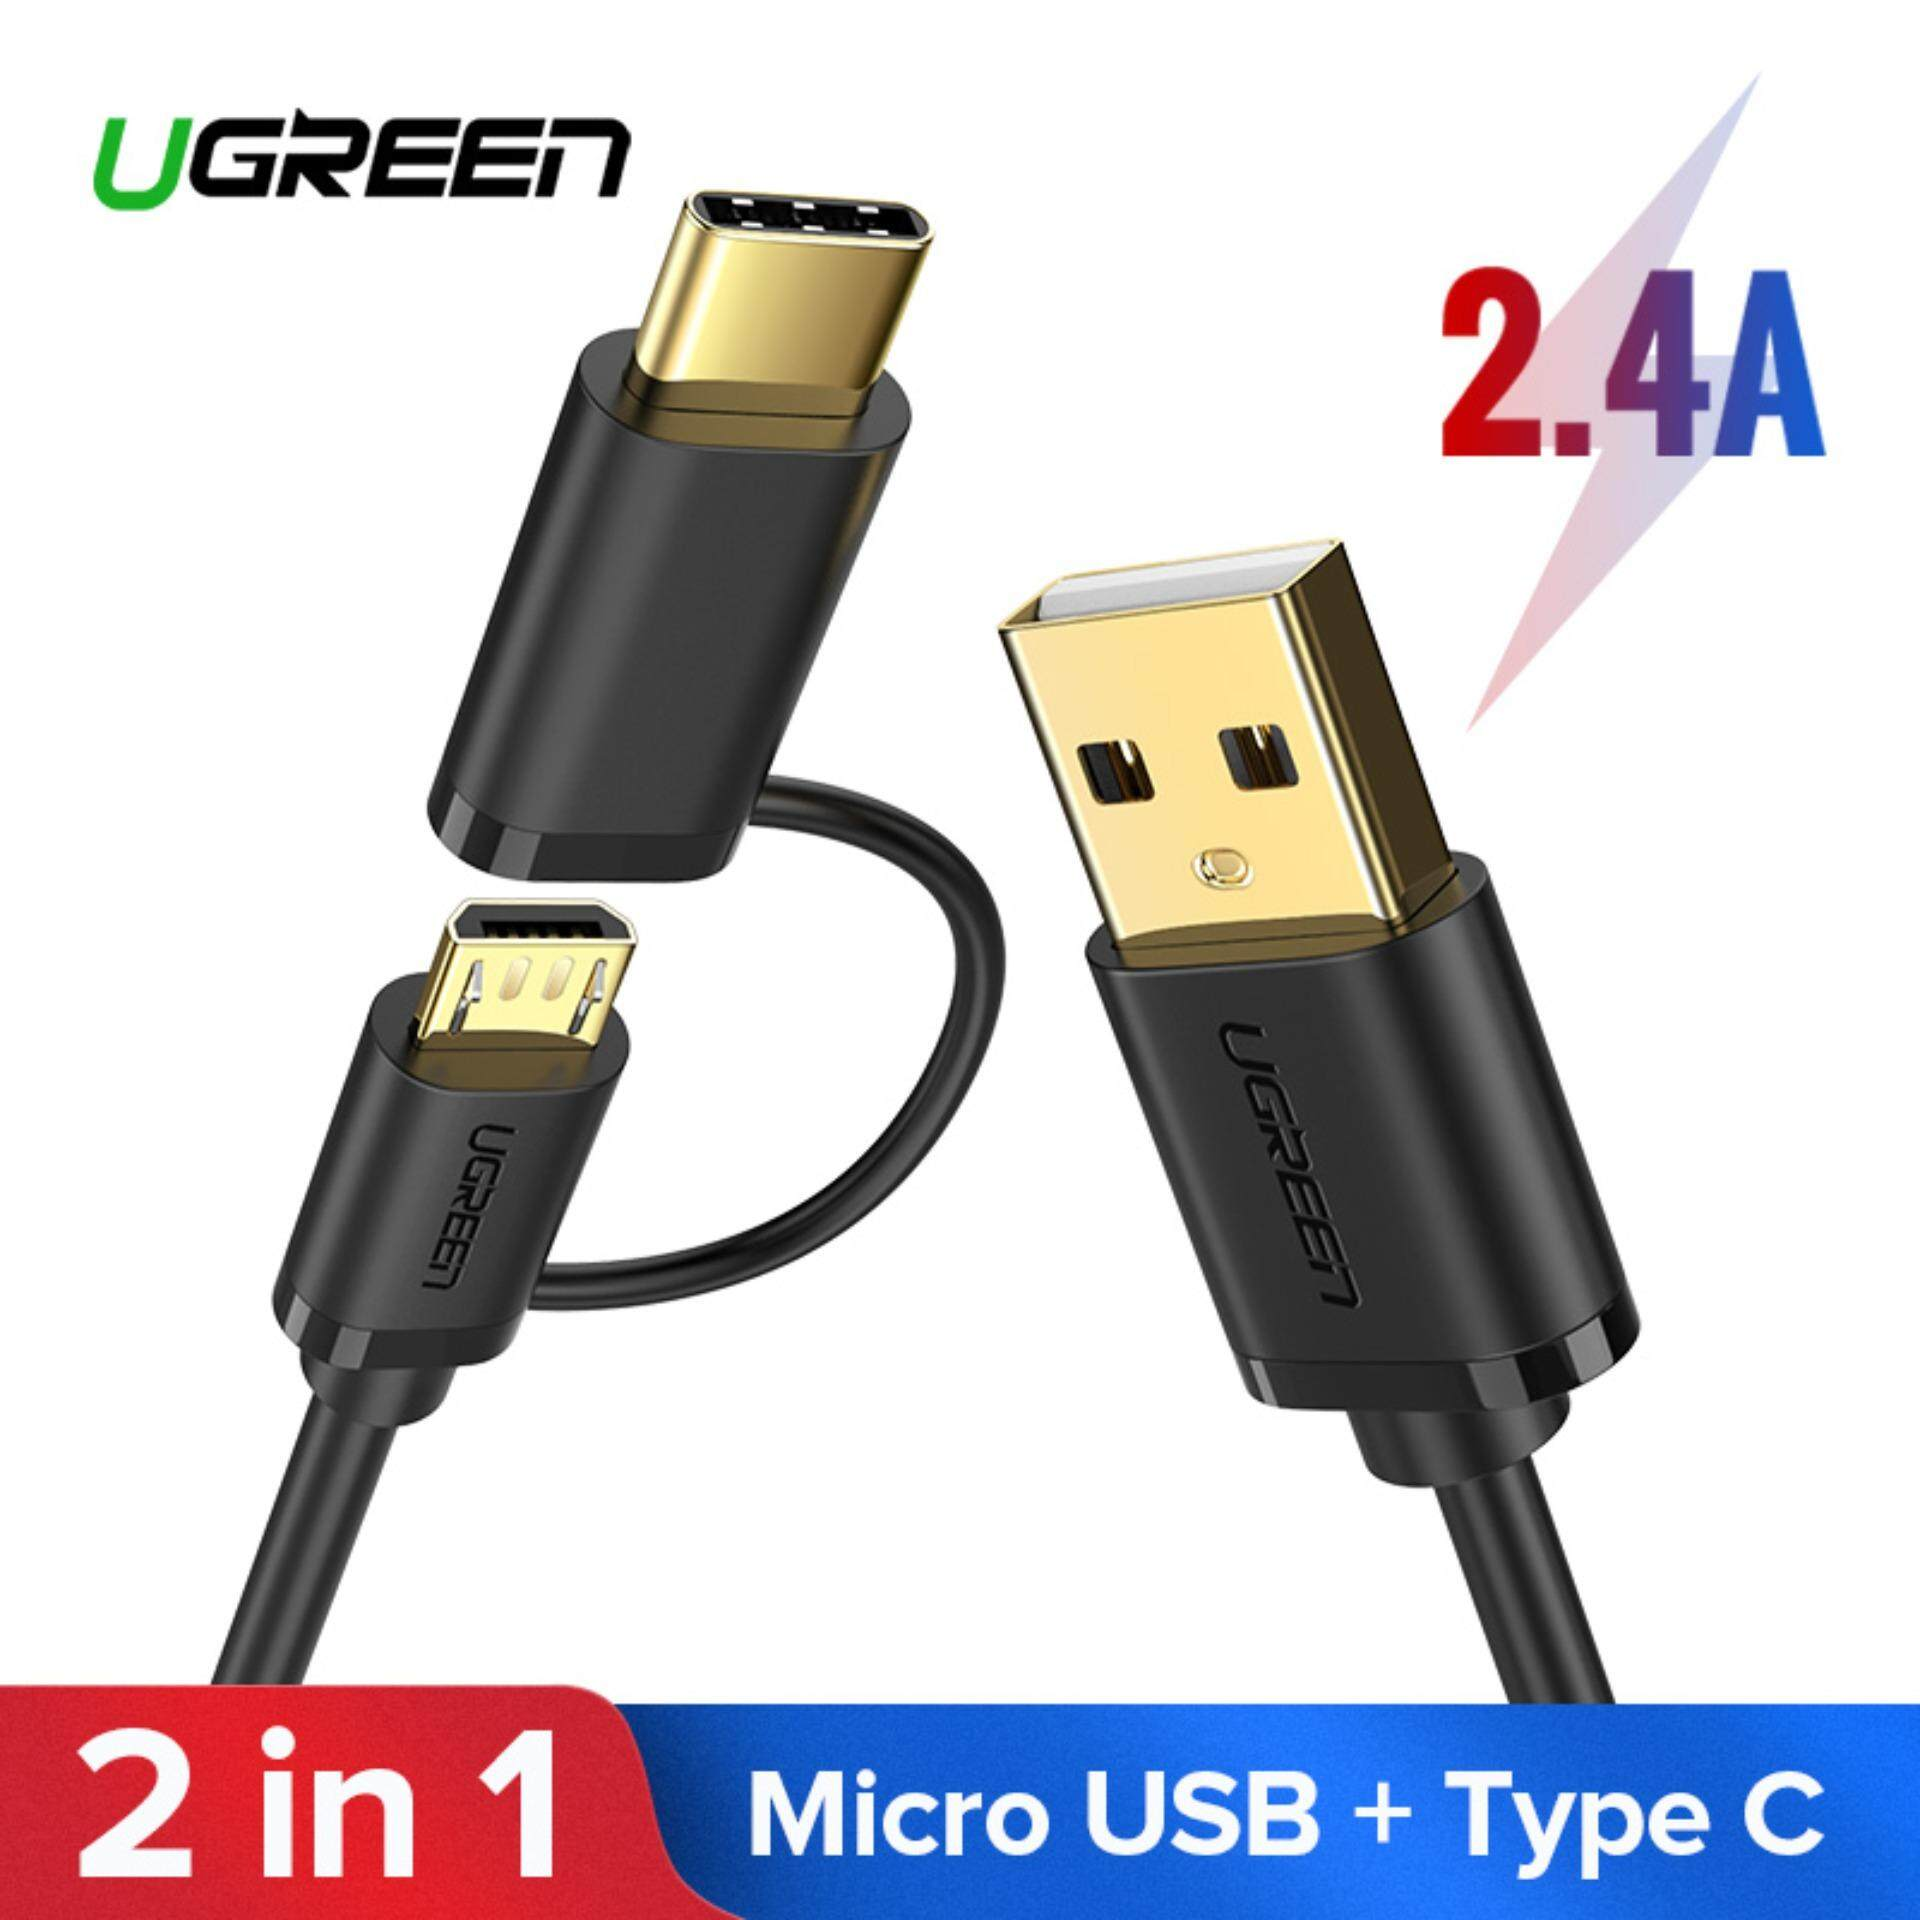 Ugreen Mobile Phone Cables Converters Price In Malaysia Best Kabel Data Xiaomi Type C 05 Meter 2 1 Micro Usb And Fast Charging Cable For